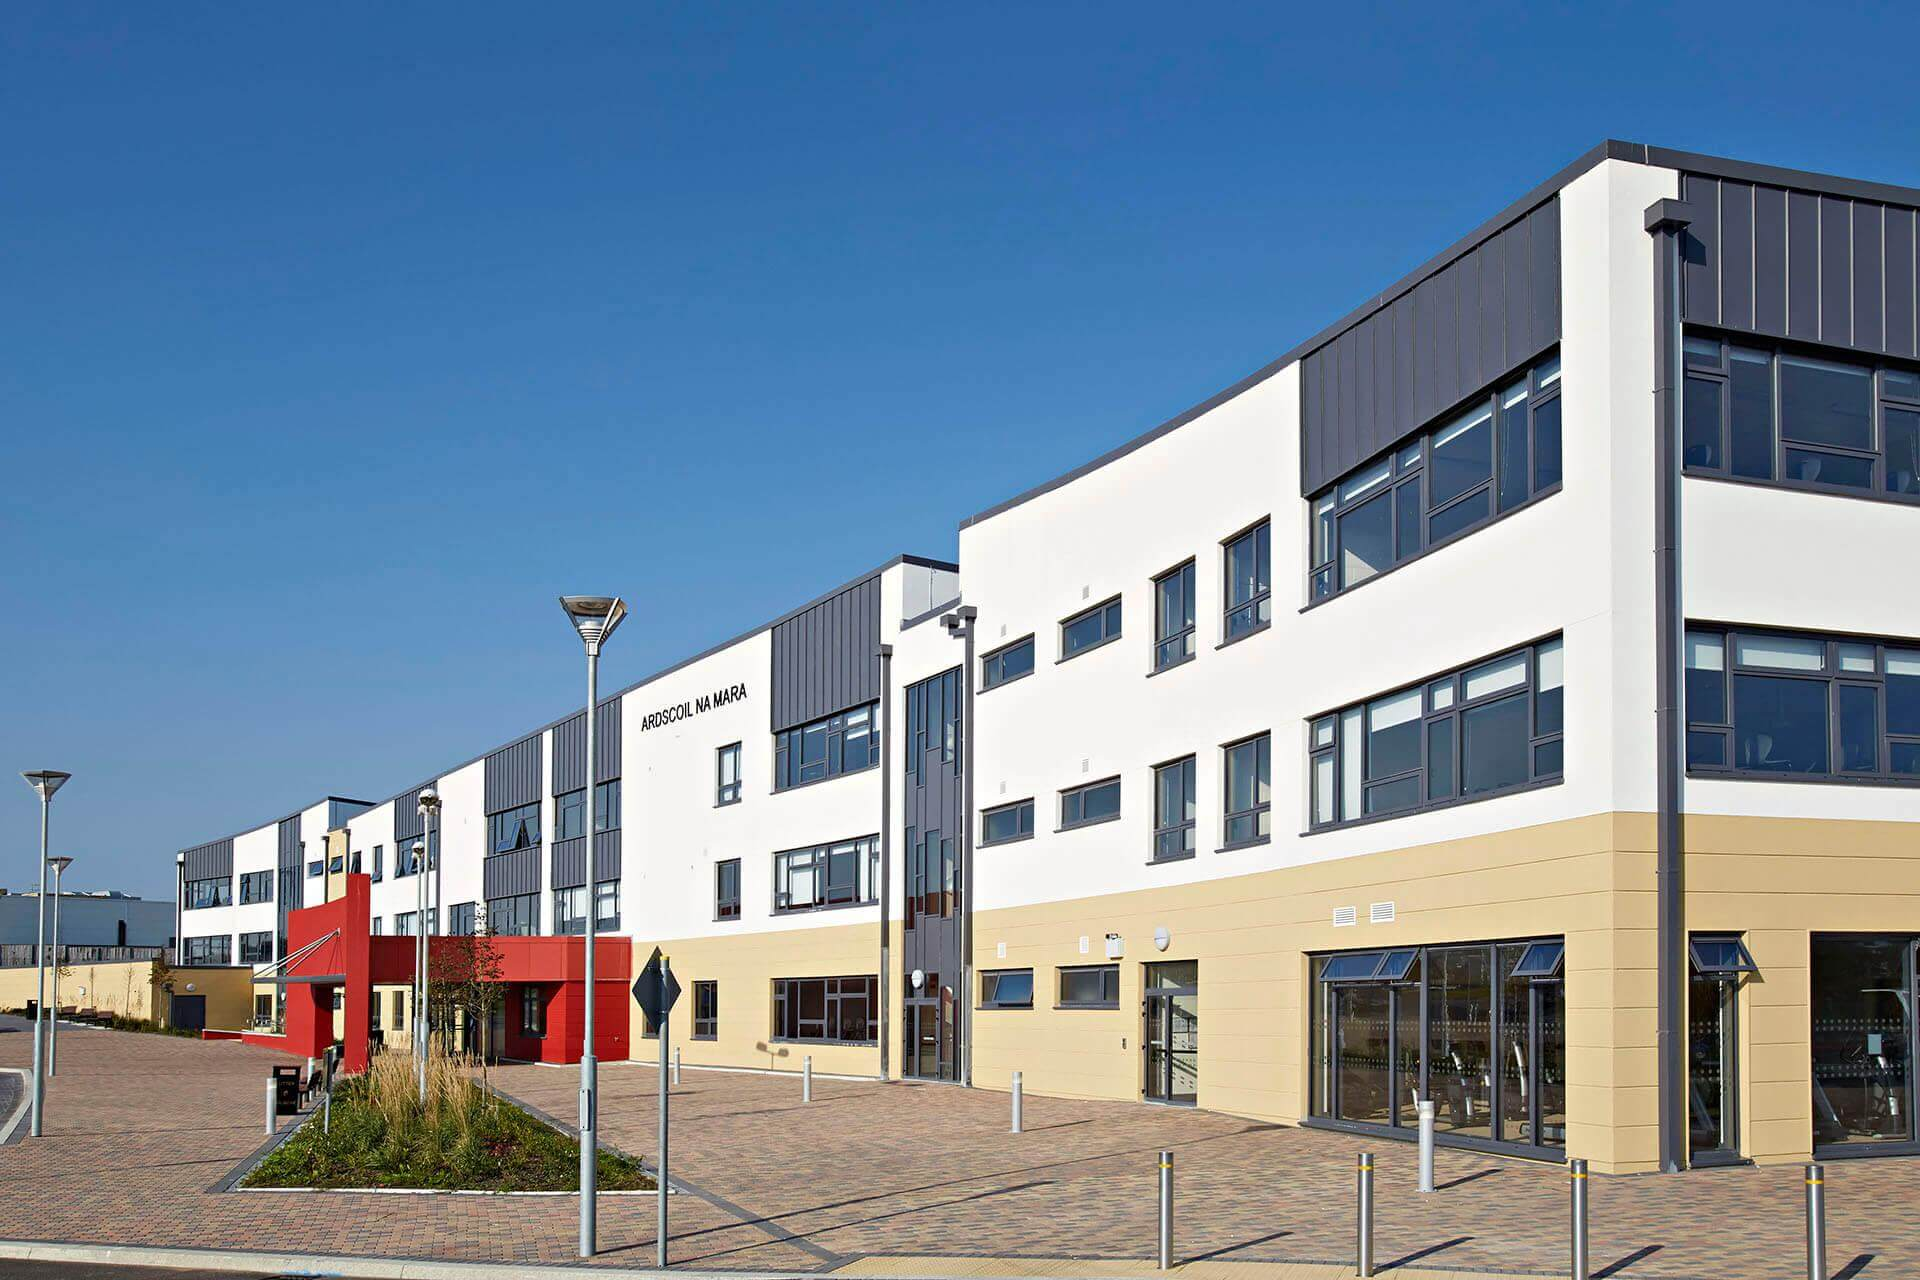 Ardscoil na Mara, Tramore, Co. Waterford - BAM Schools Bundle 3 PPP